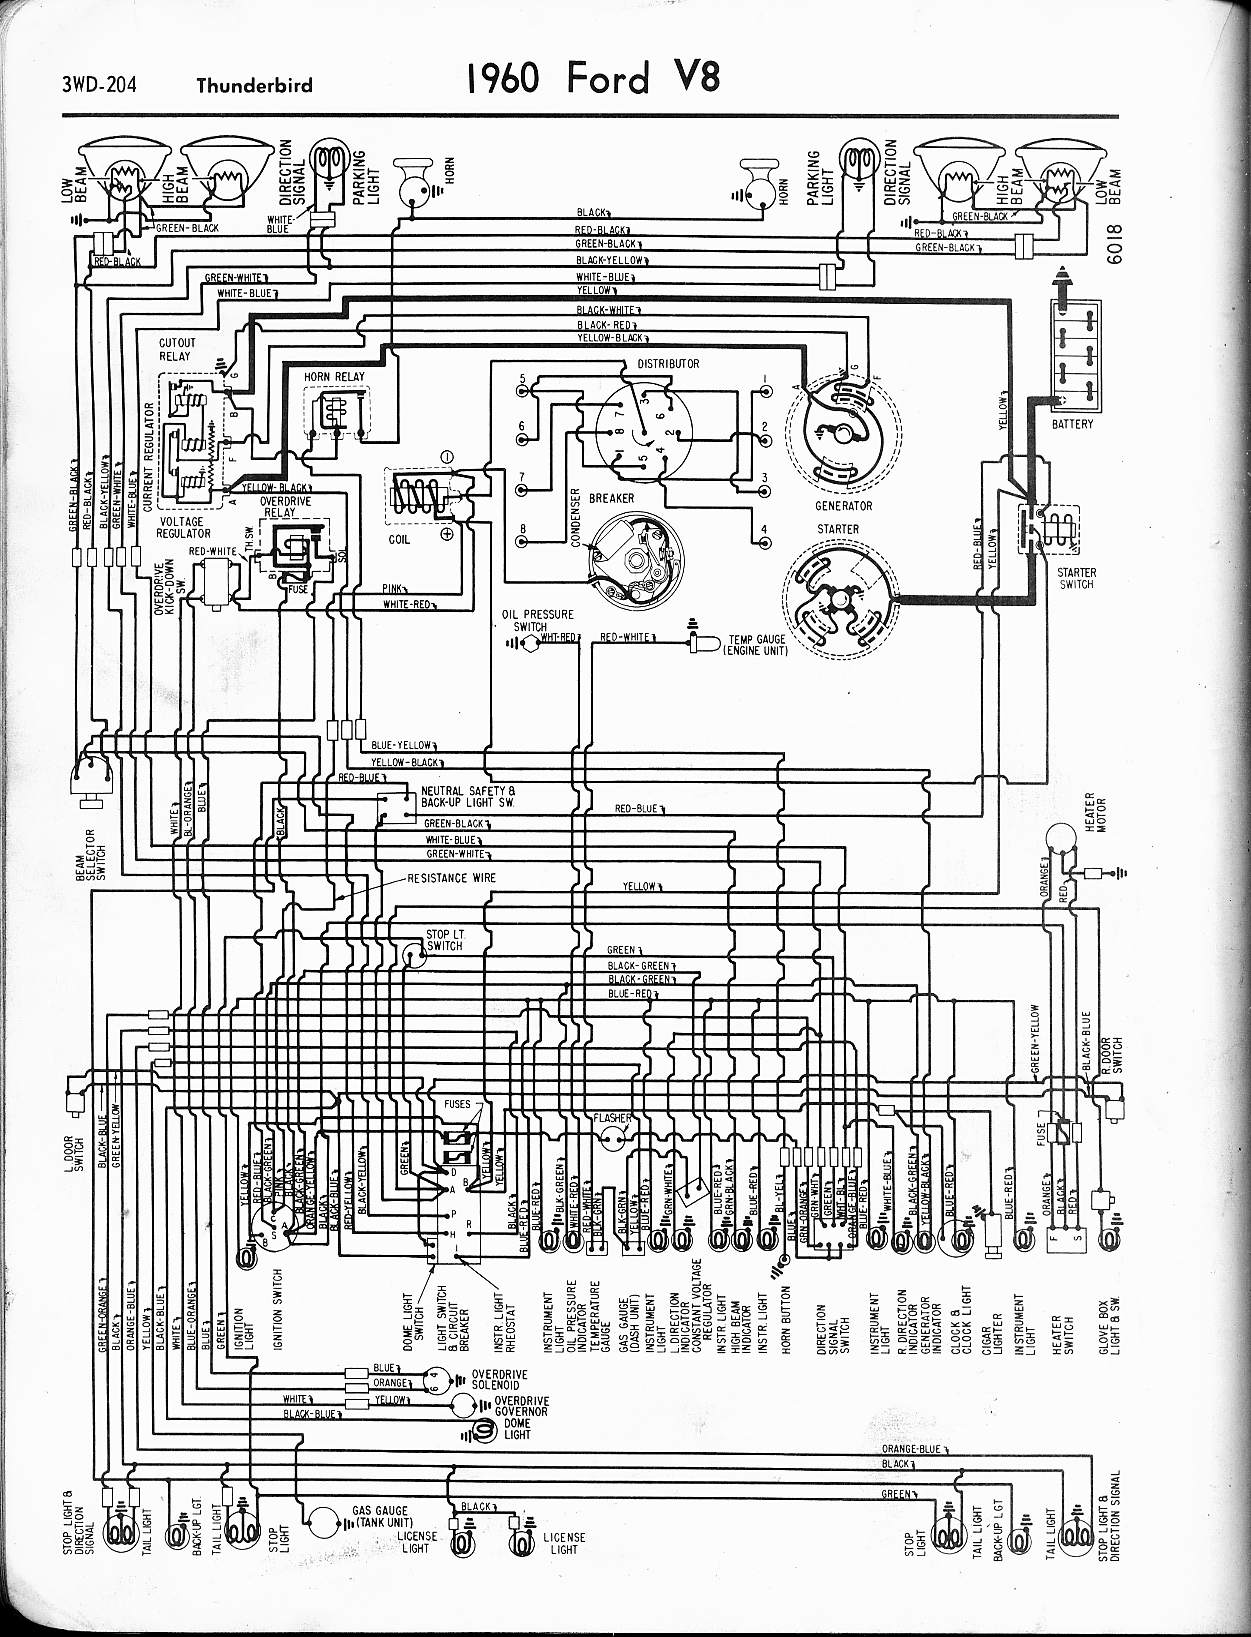 MWire5765 204 57 65 ford wiring diagrams 1996 ford thunderbird radio wiring diagram at eliteediting.co